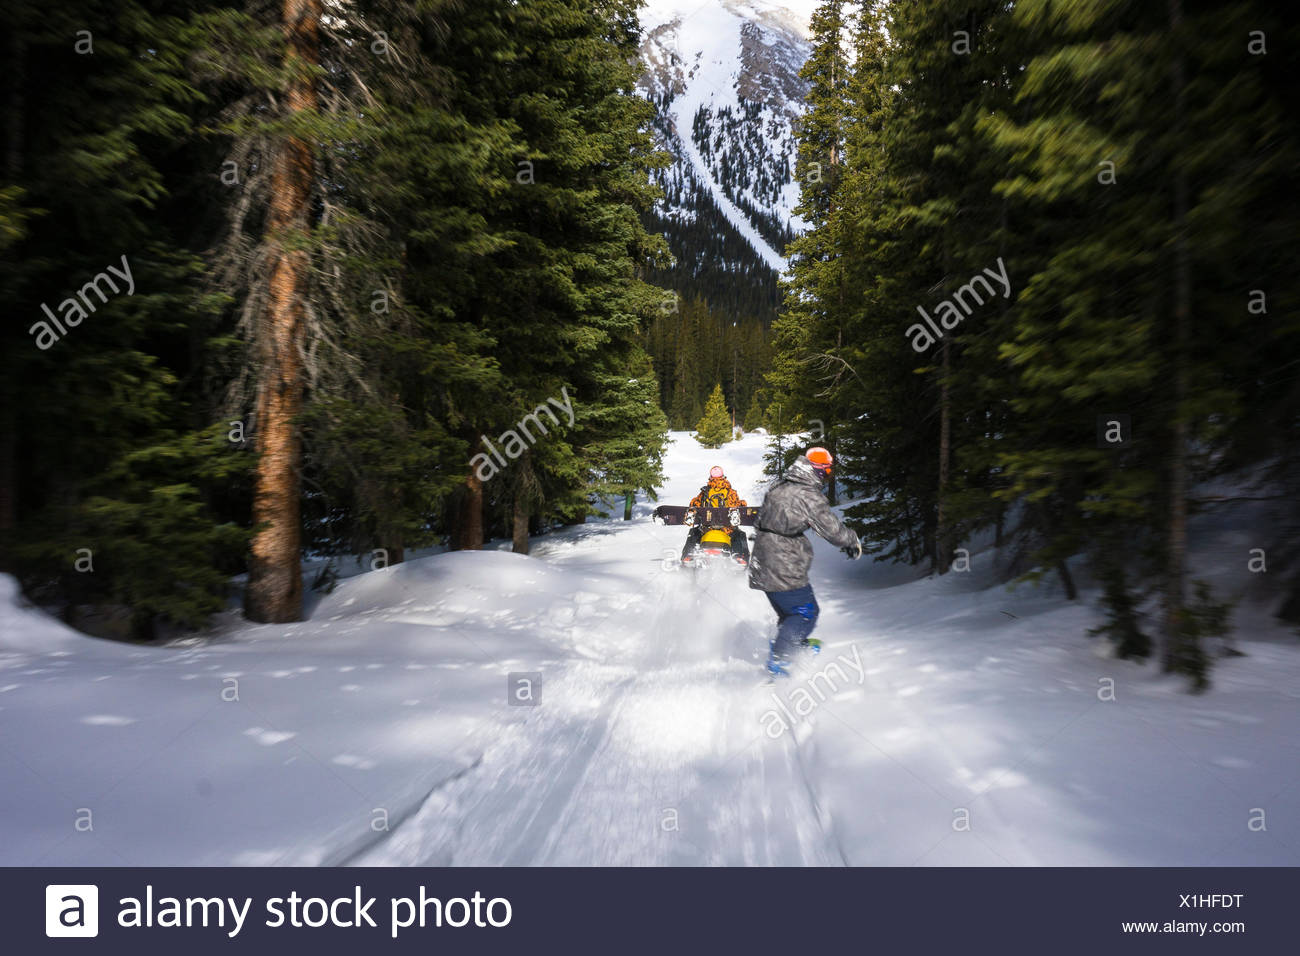 Snowboarder getting towed behind snowmobile through forest - Stock Image